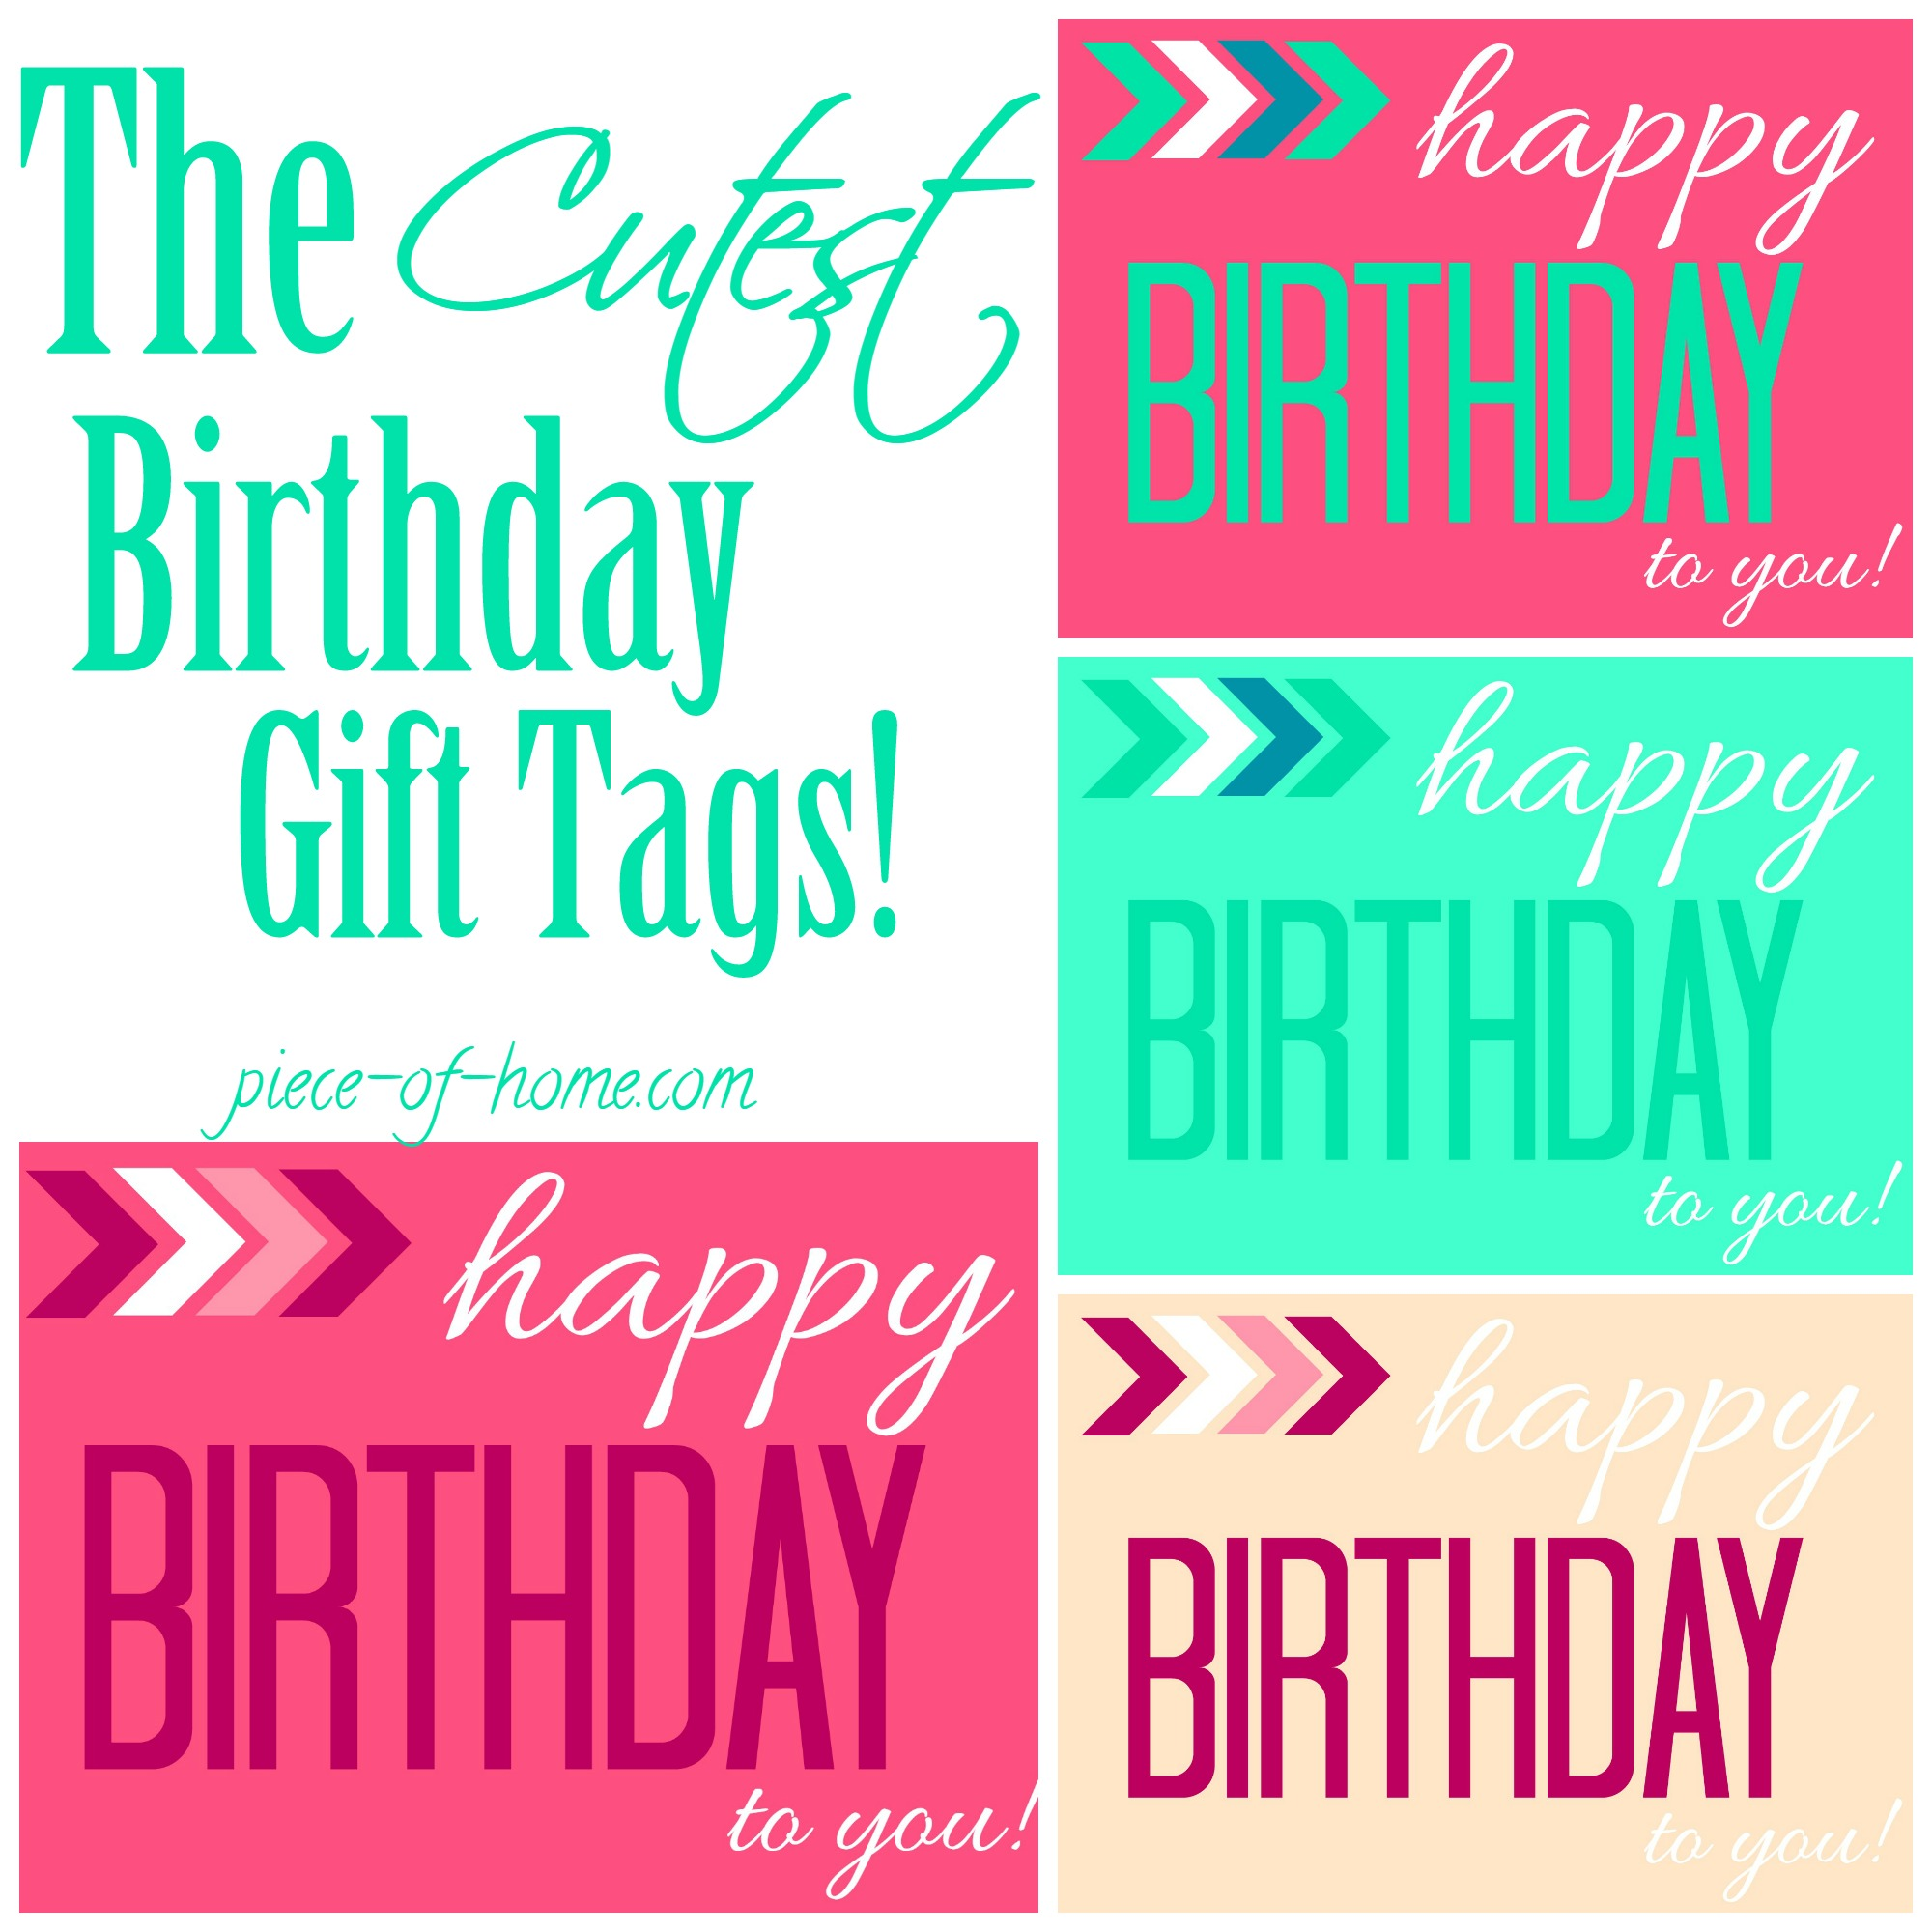 birthday gift labels template ; The-Cutest-Birthday-Gift-Tags